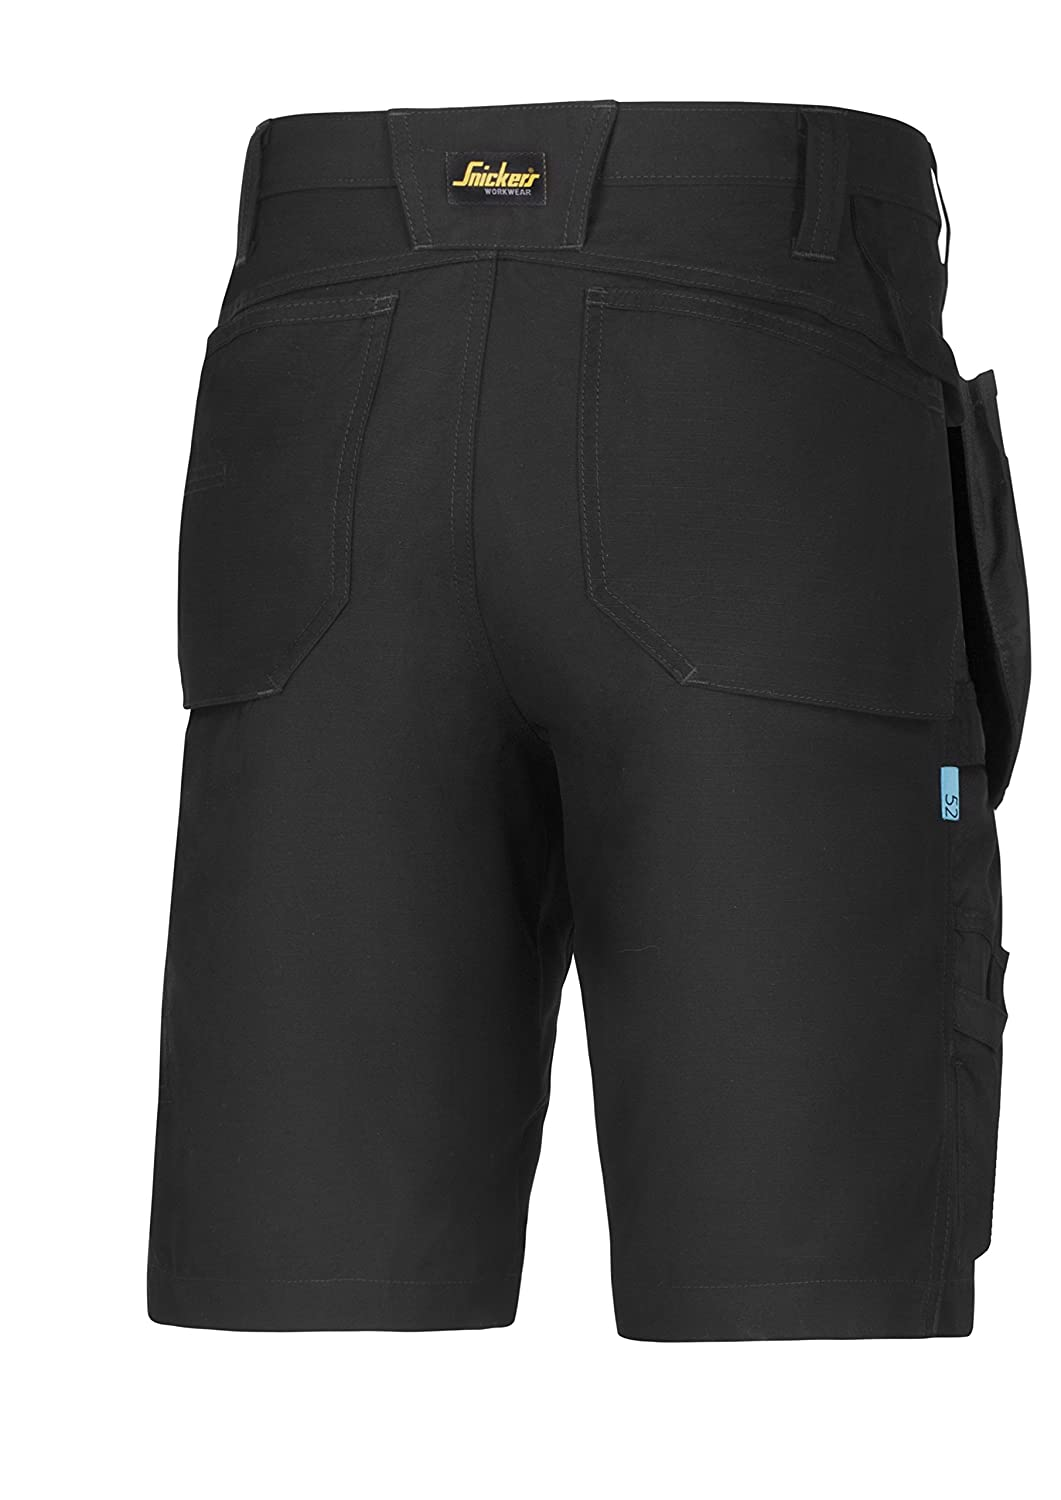 Snickers 61010404054 Size 54 LiteWork 37.5 Work Shorts with Pockets Black